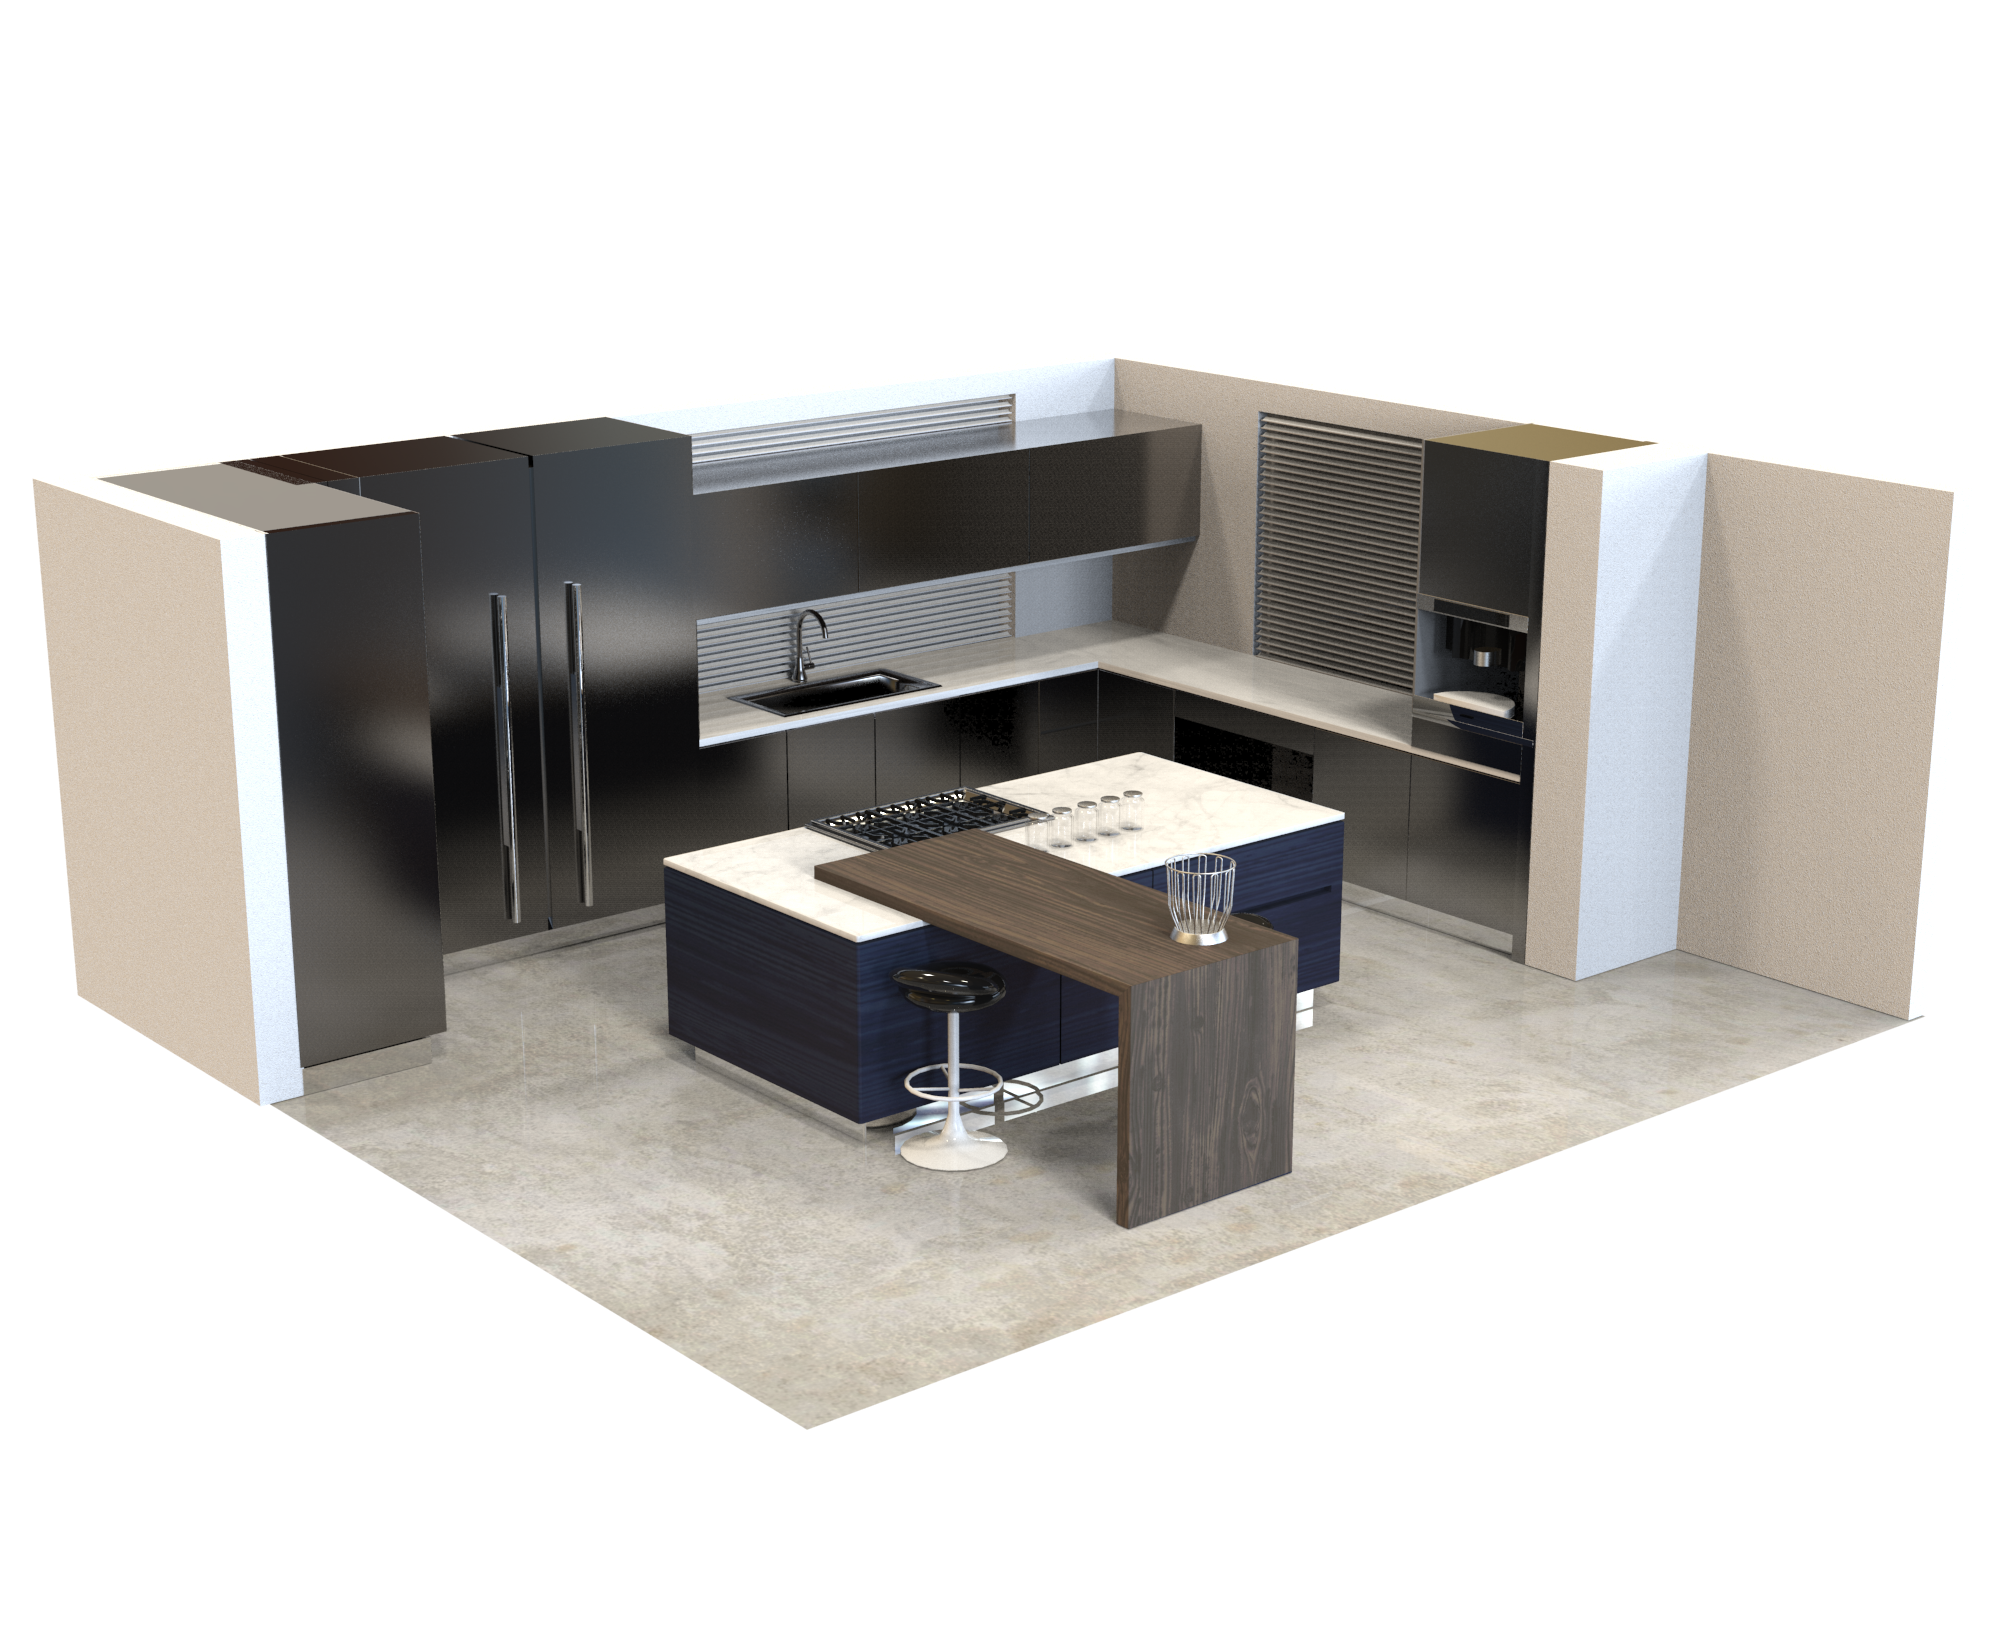 InteriorKitchen.317.png